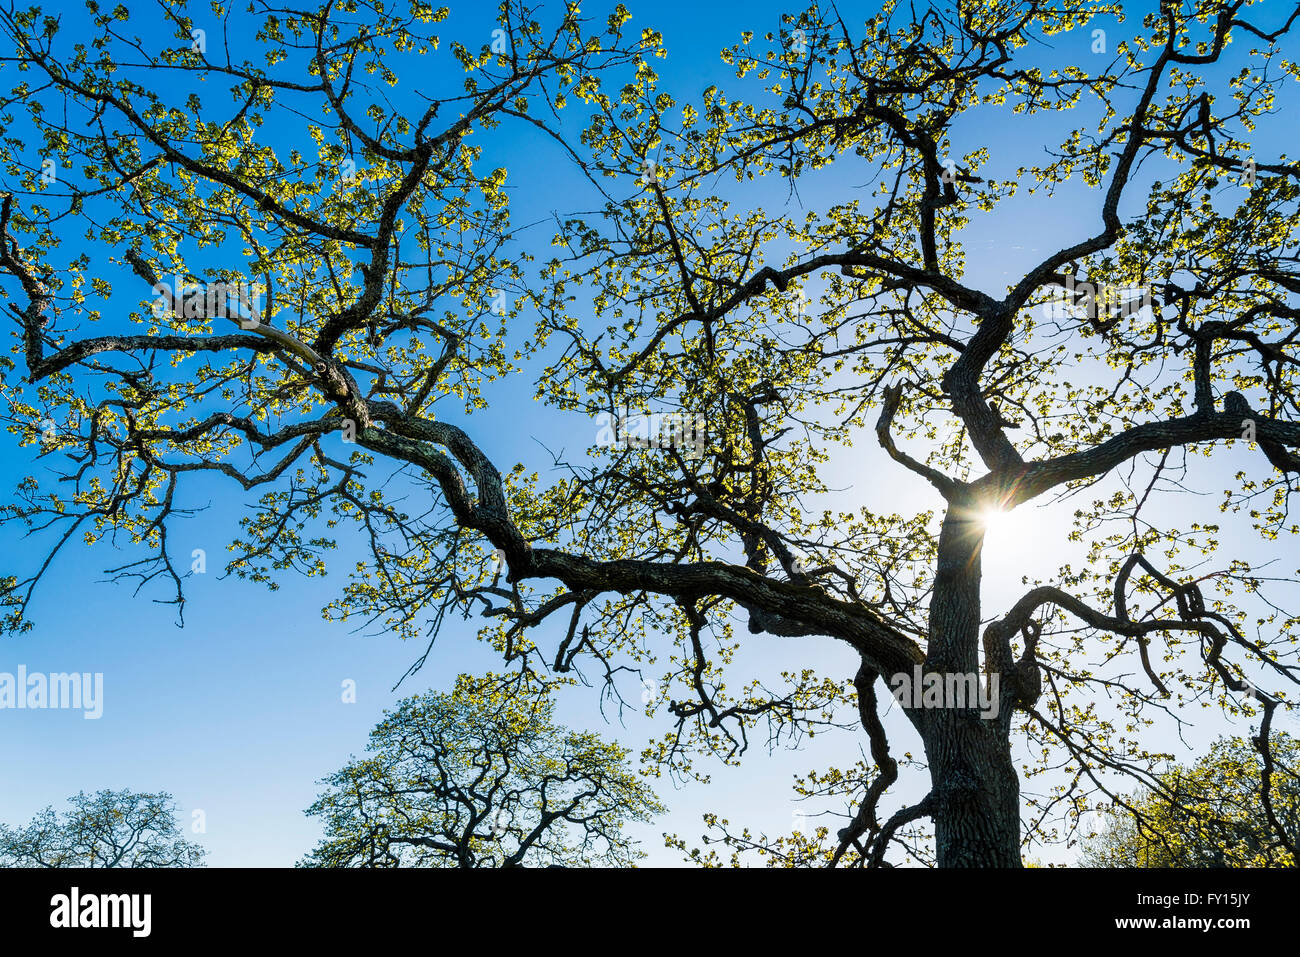 Garry oak tree. Quercus garryana - Stock Image